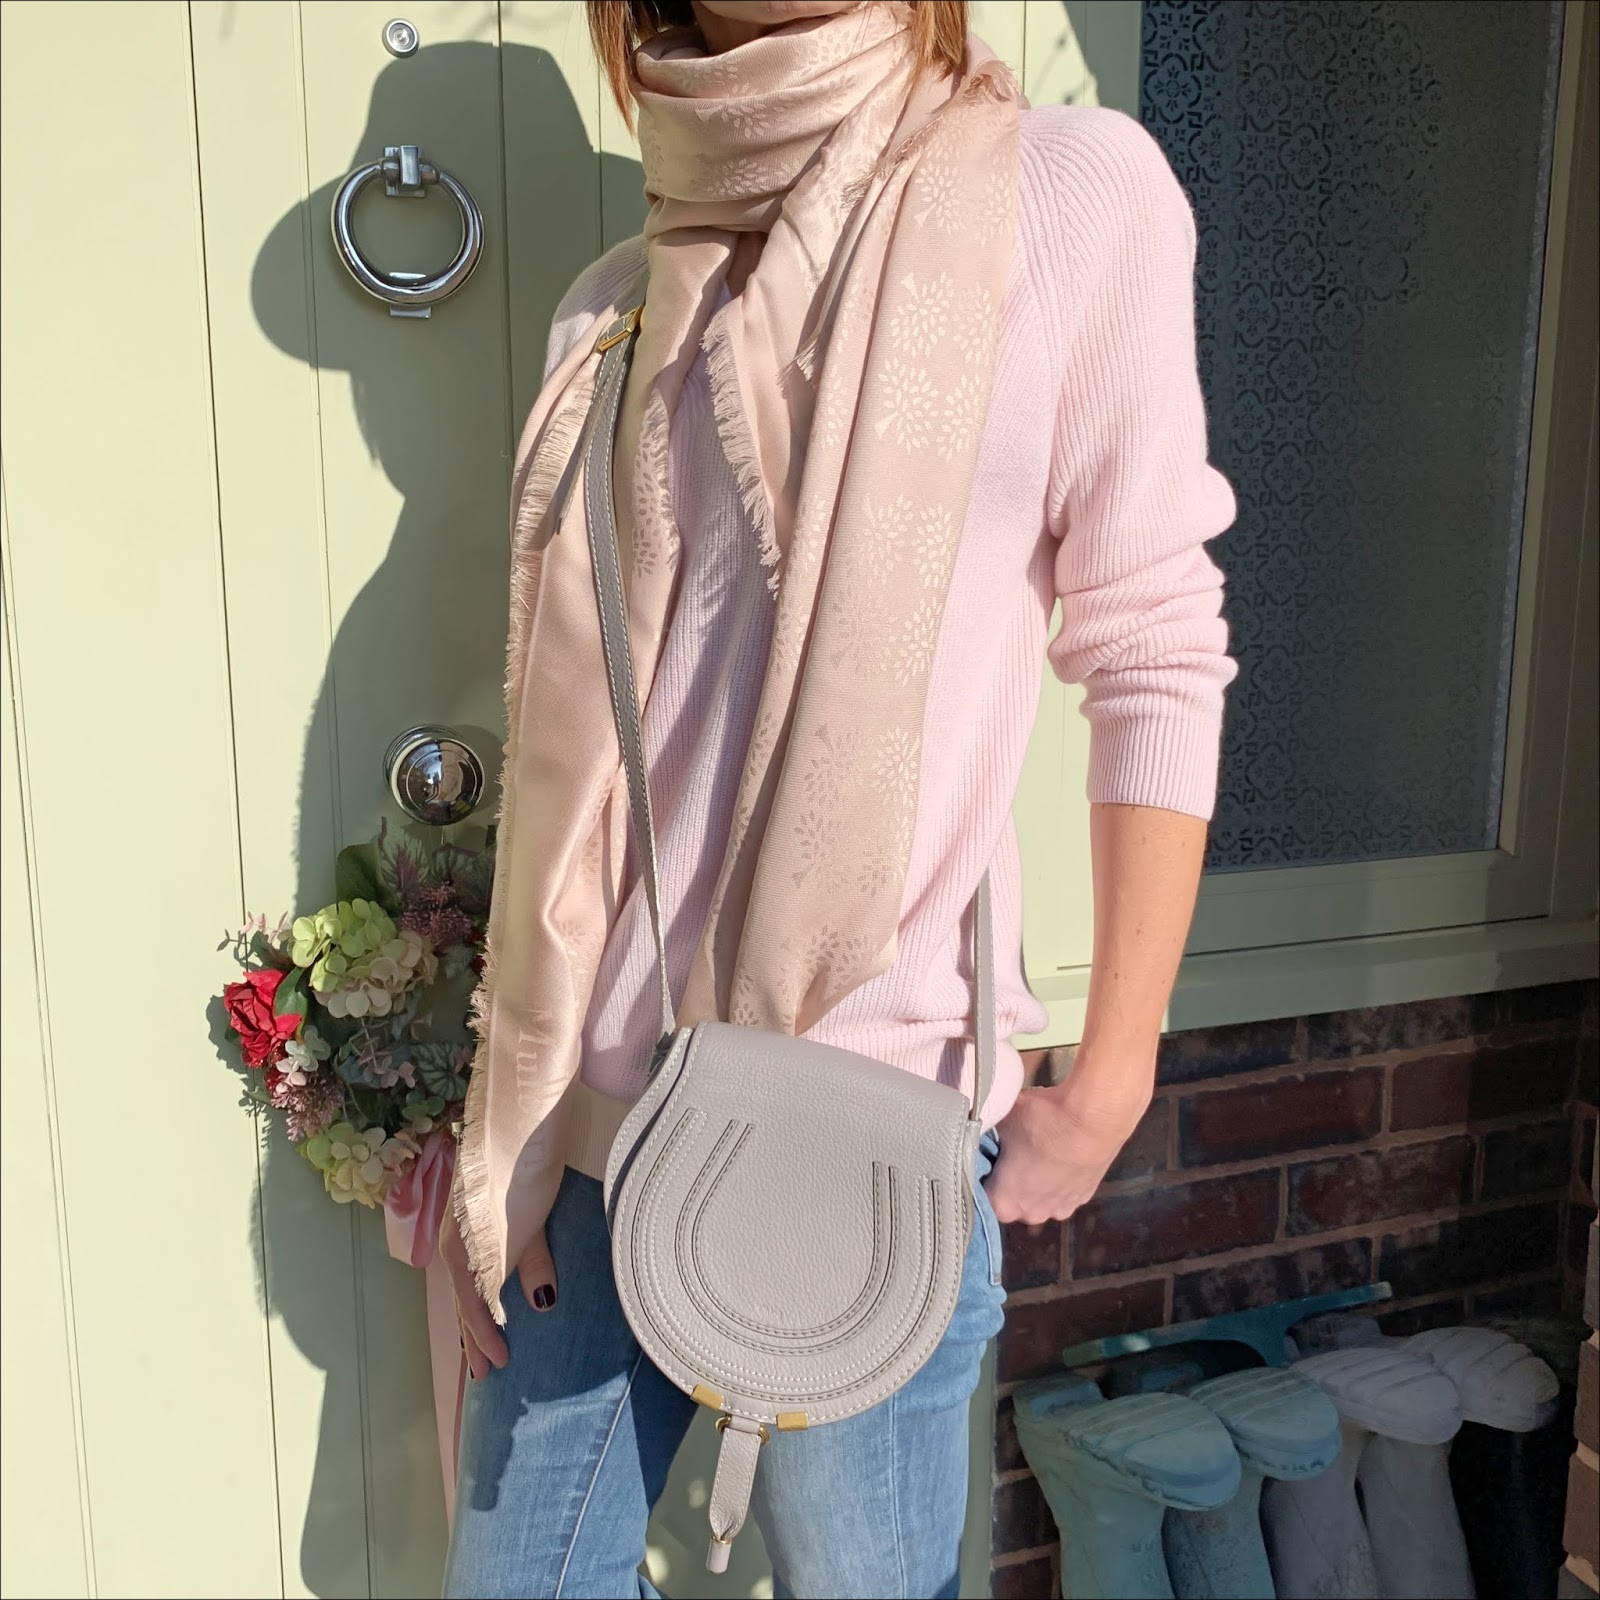 my midlife fashion, zara felt trilby, mulberry square silk tree scarf, chloe marcie small leather cross body bag, j crew toothpick 8 inch stretchy jeans, french sole henrietta glitter ballet pumps, peter hahn include jumper in 100 percent cashmere